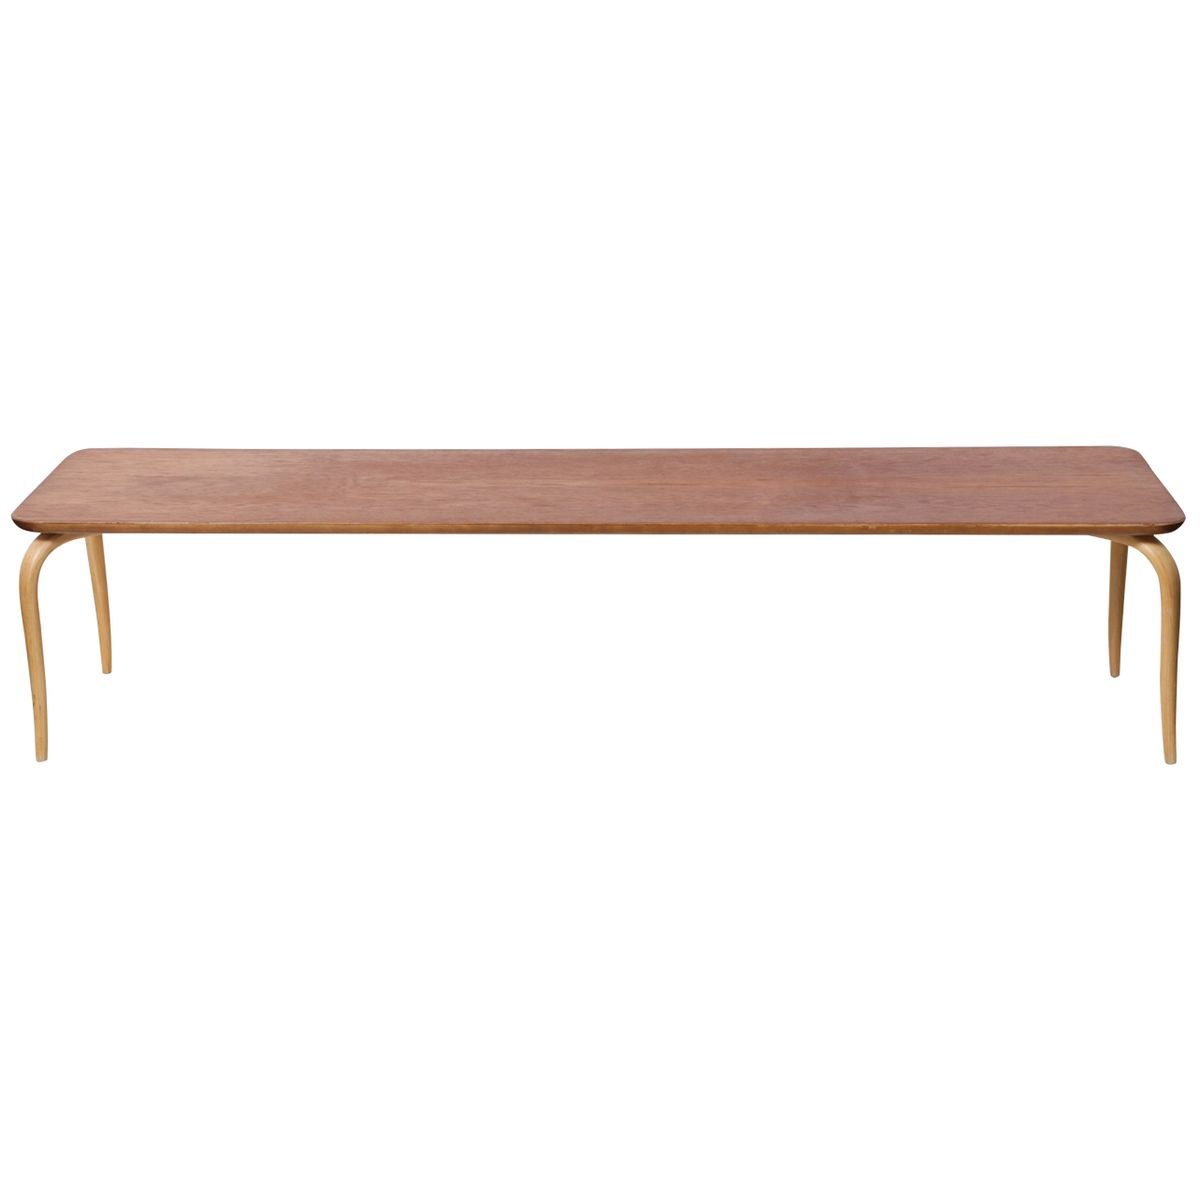 Low Coffee Table By Bruno Mathsson For Karl Mathsson For Sale At Pamono